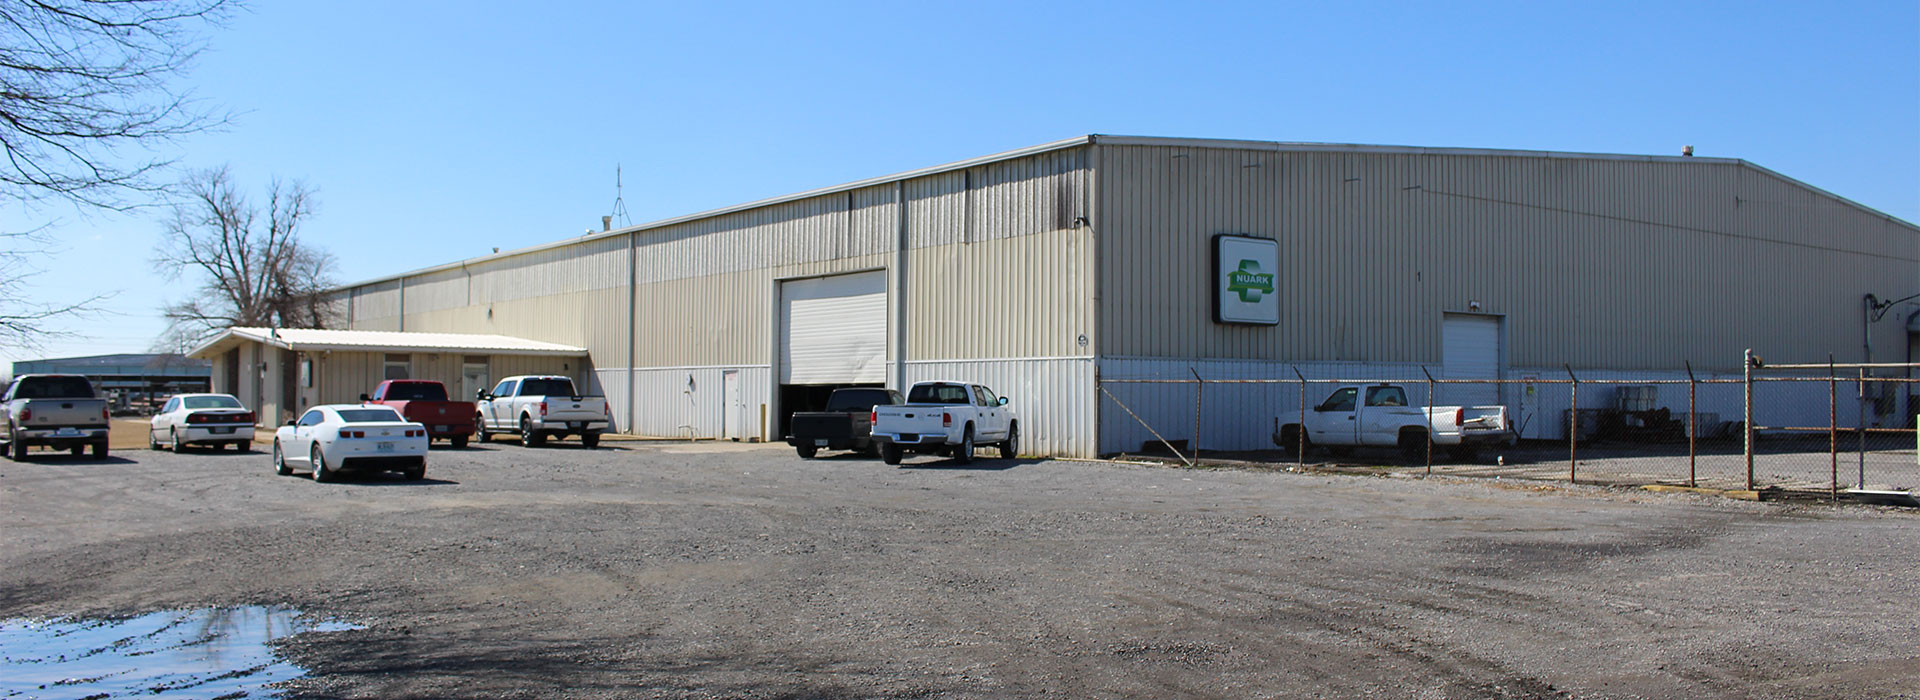 Nuark Warehouse located in Blytheville, AR.